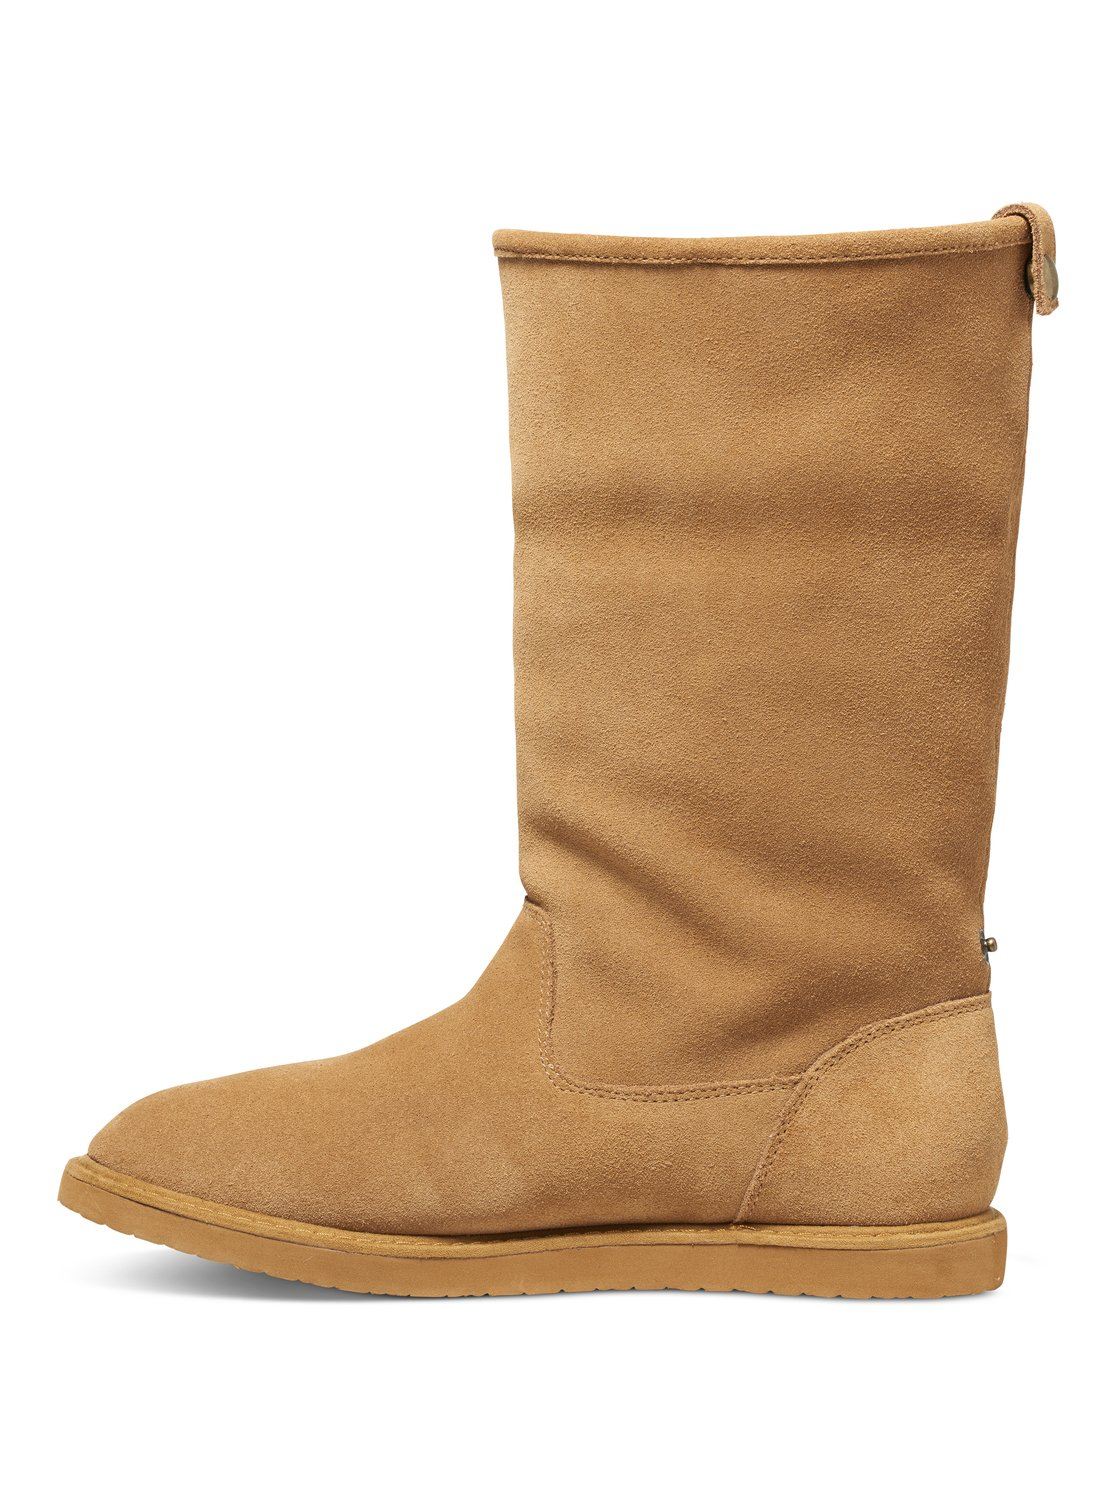 Find great deals on eBay for roxy boots and animal boots. Shop with confidence.